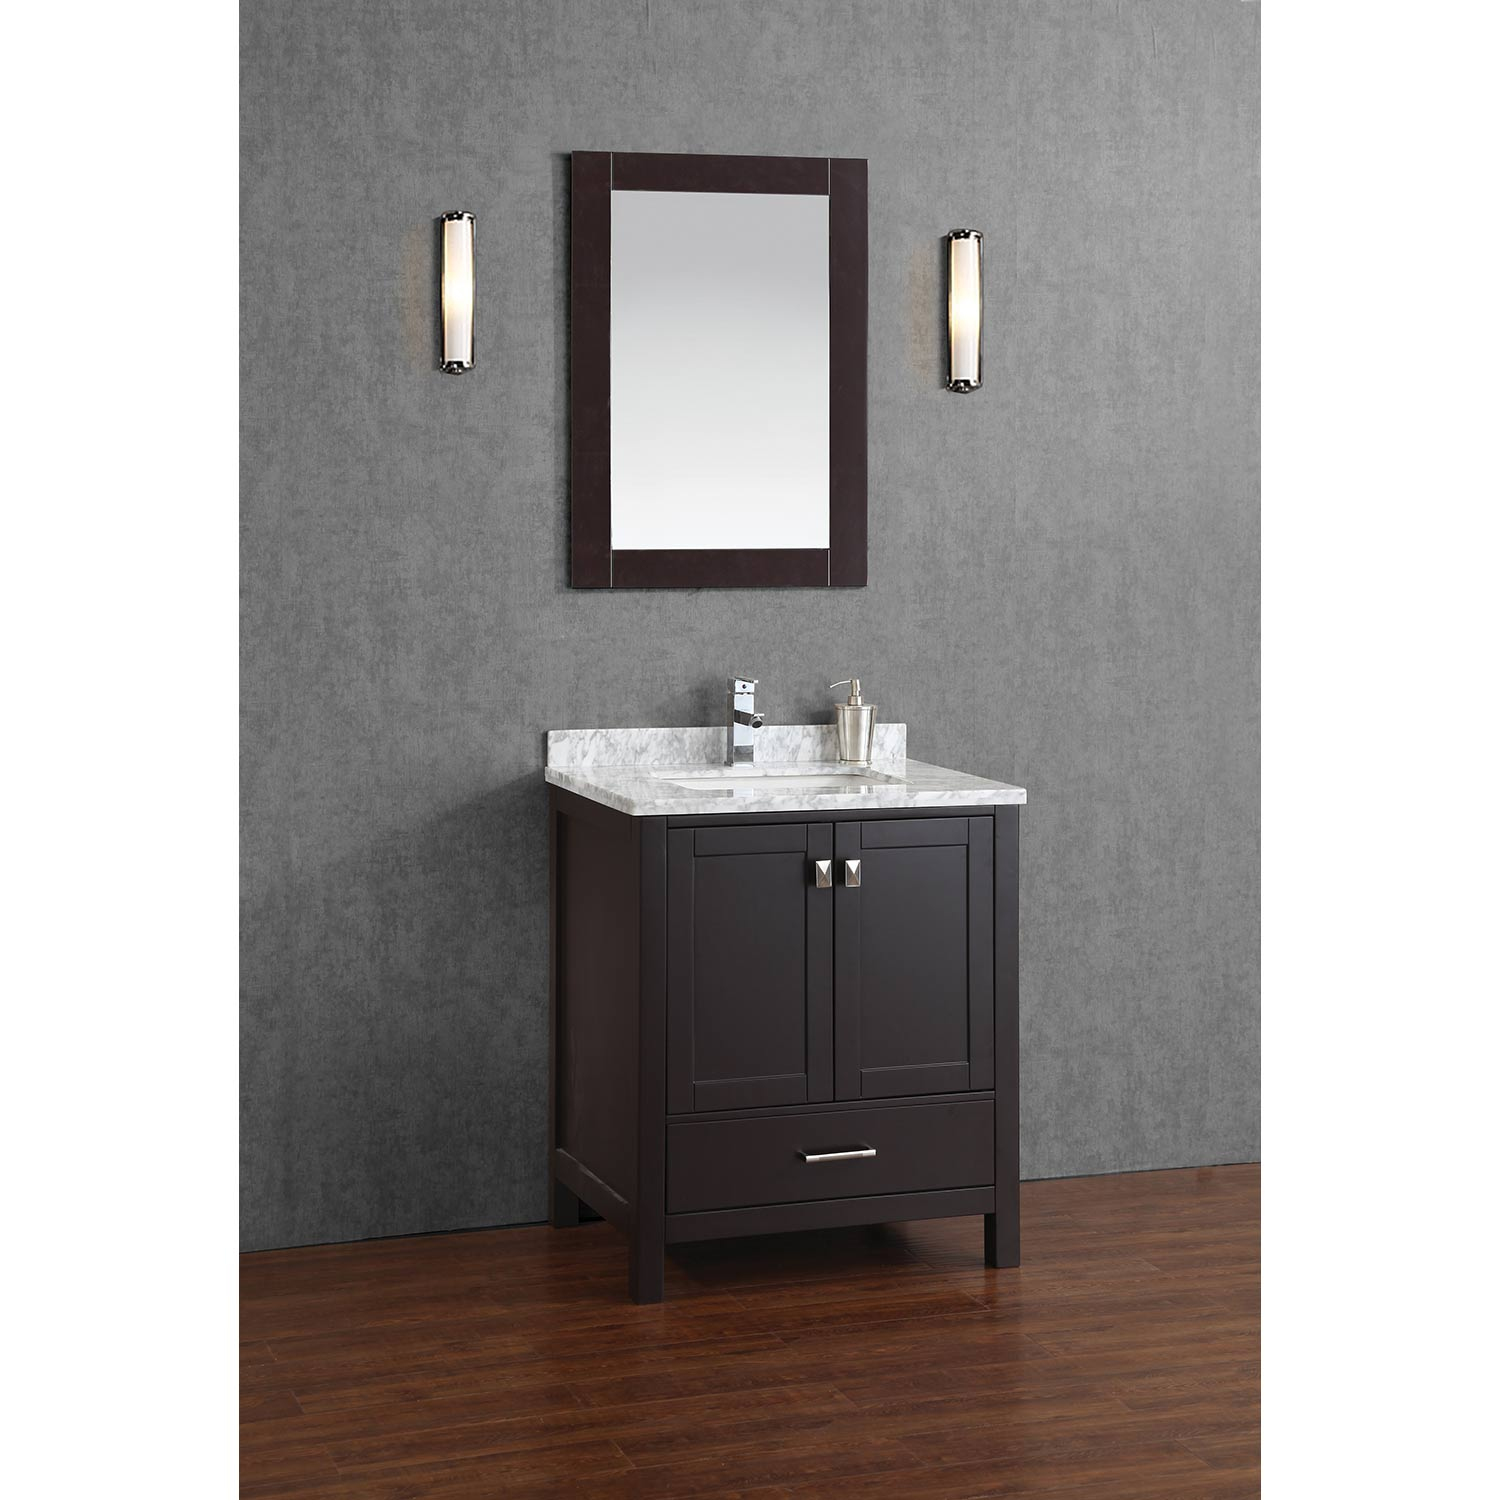 Buy Vincent 30 Inch Solid Wood Double Bathroom Vanity In Espresso Hm 13001 30 Wmsq Esp